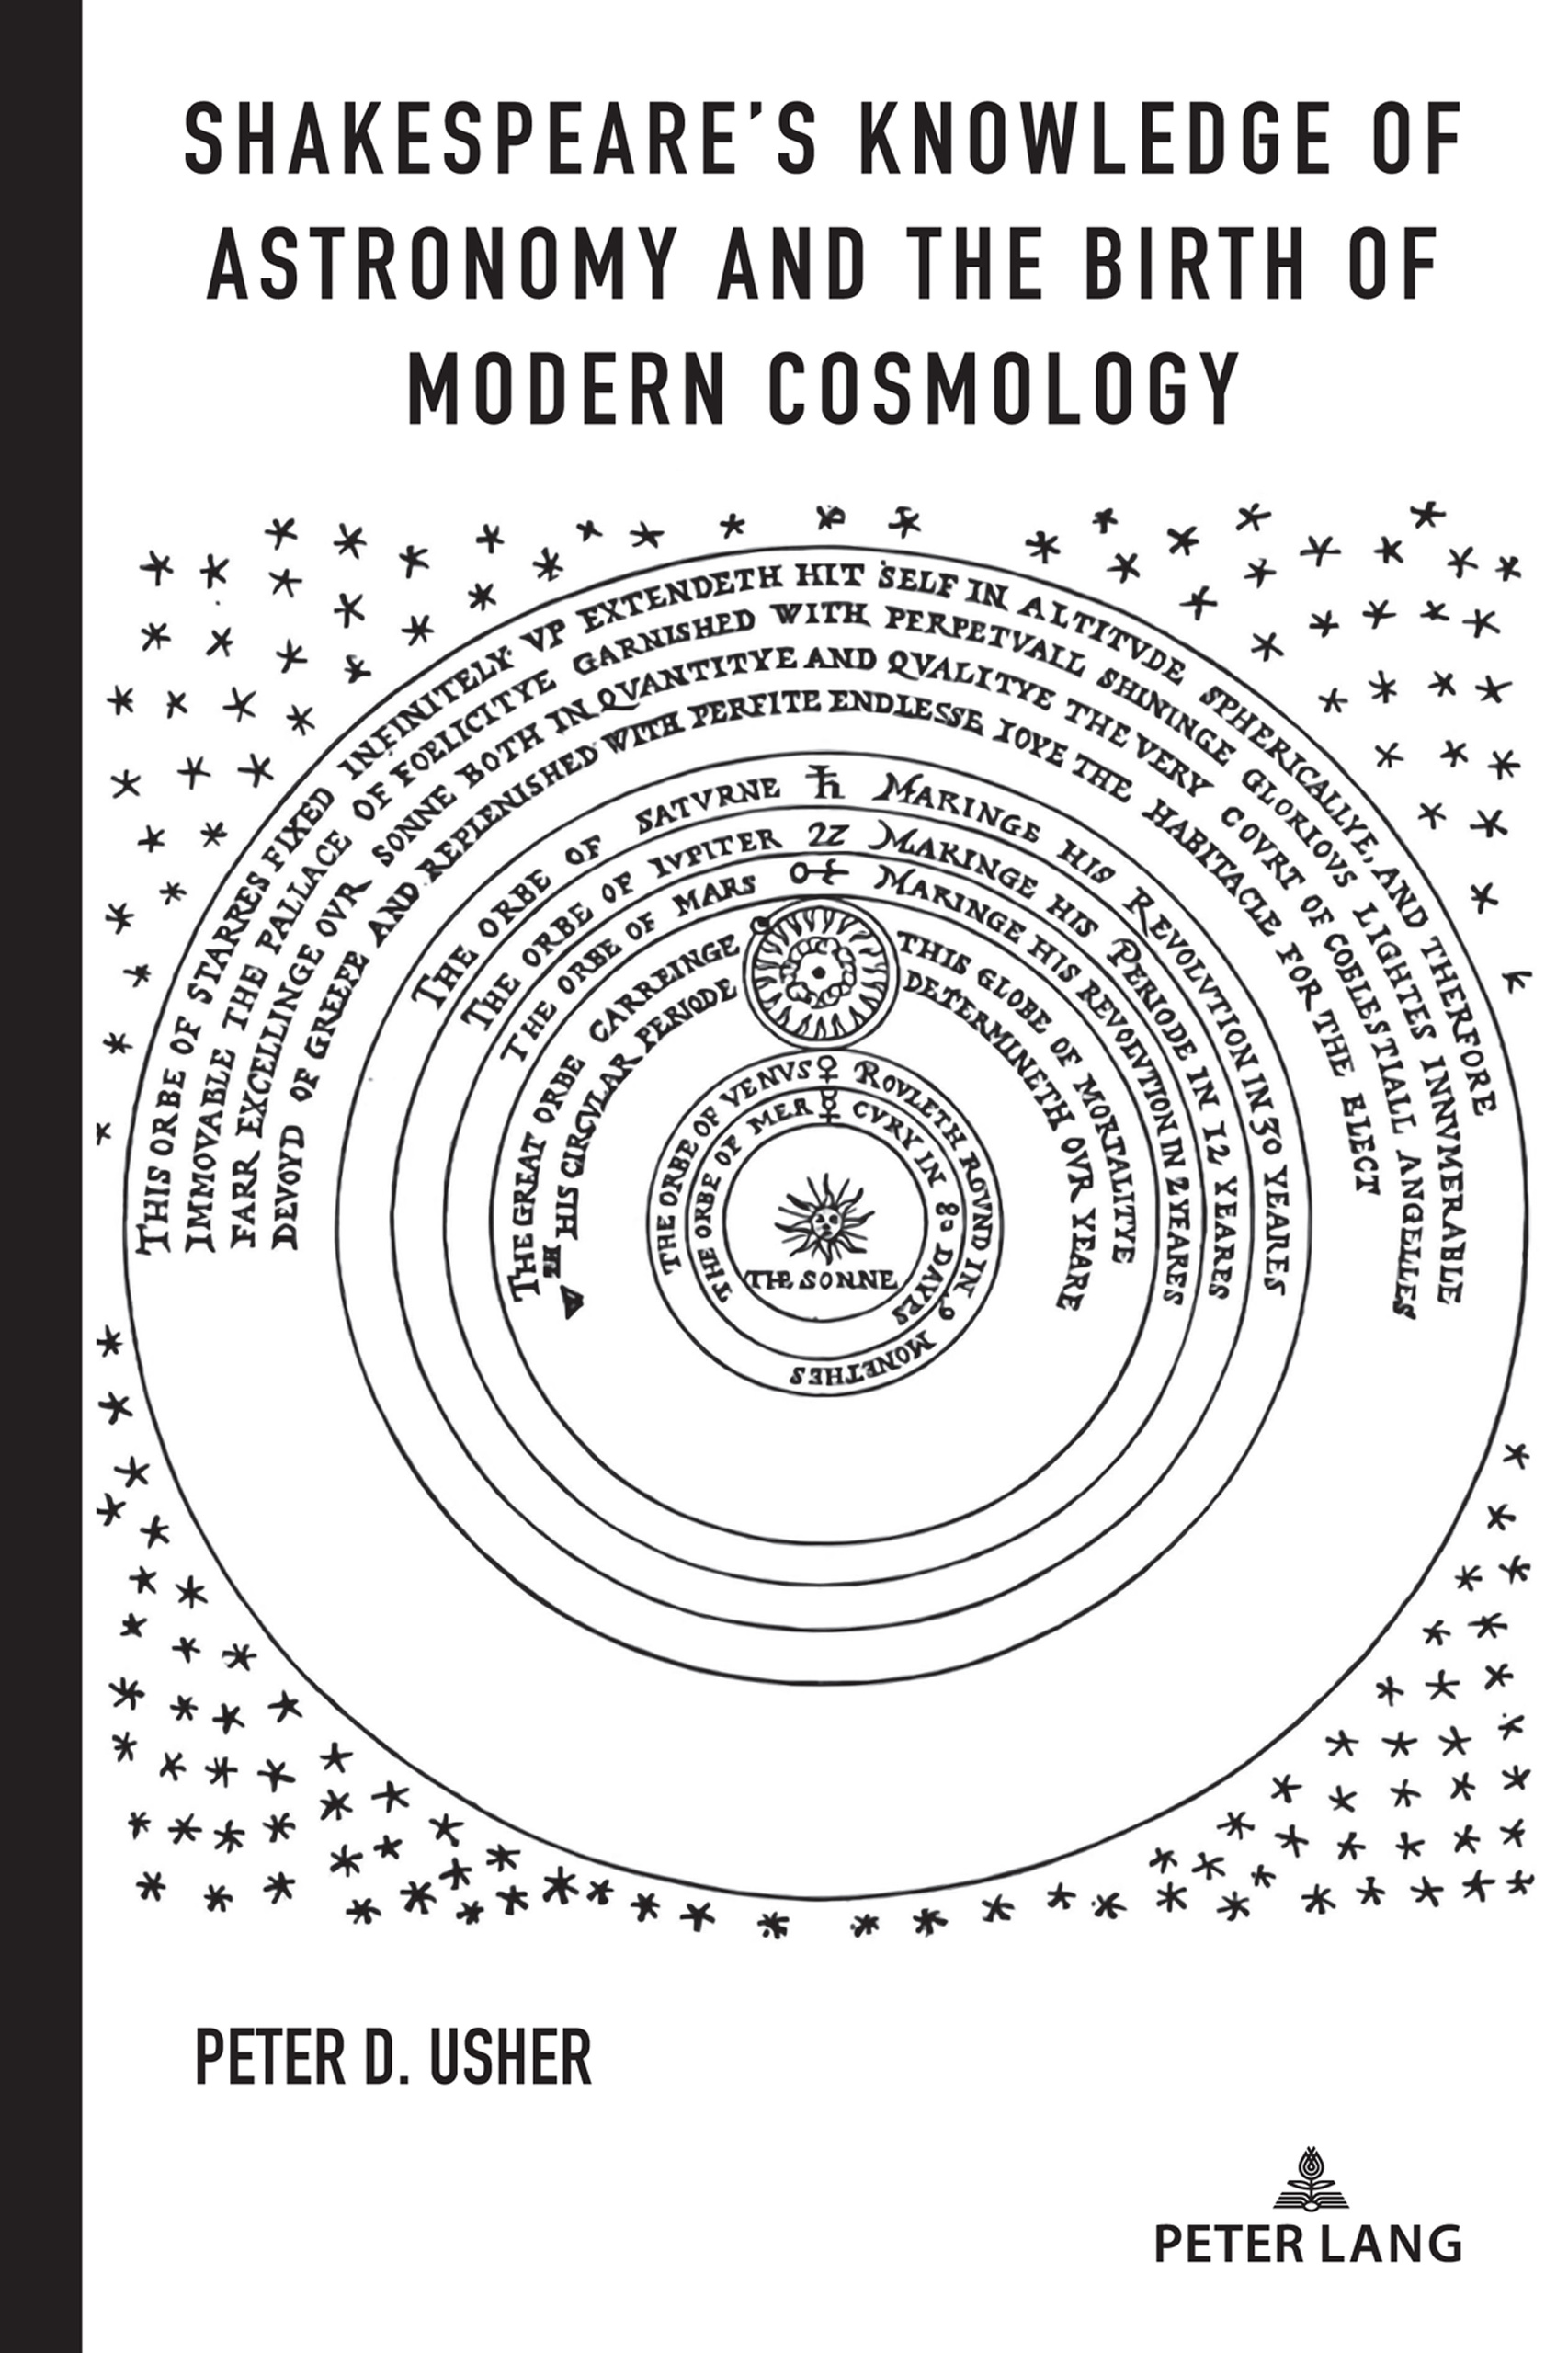 Title: Shakespeare's Knowledge of Astronomy and the Birth of Modern Cosmology